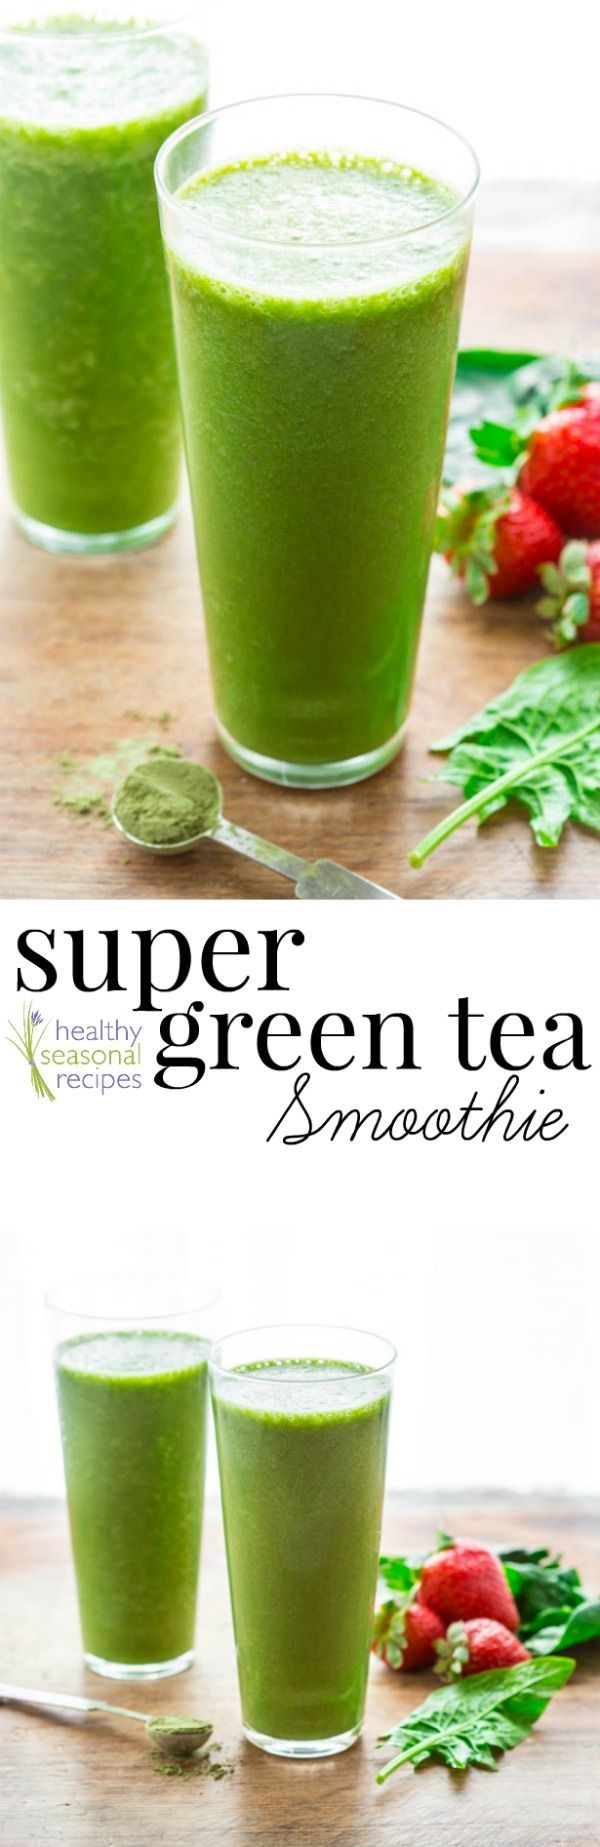 Blog post at Healthy Seasonal Recipes : This Super Green Tea Antioxidant Smoothie gets its color from spinach and matcha green tea powder. It is loaded with protein, vitamins and a[..]